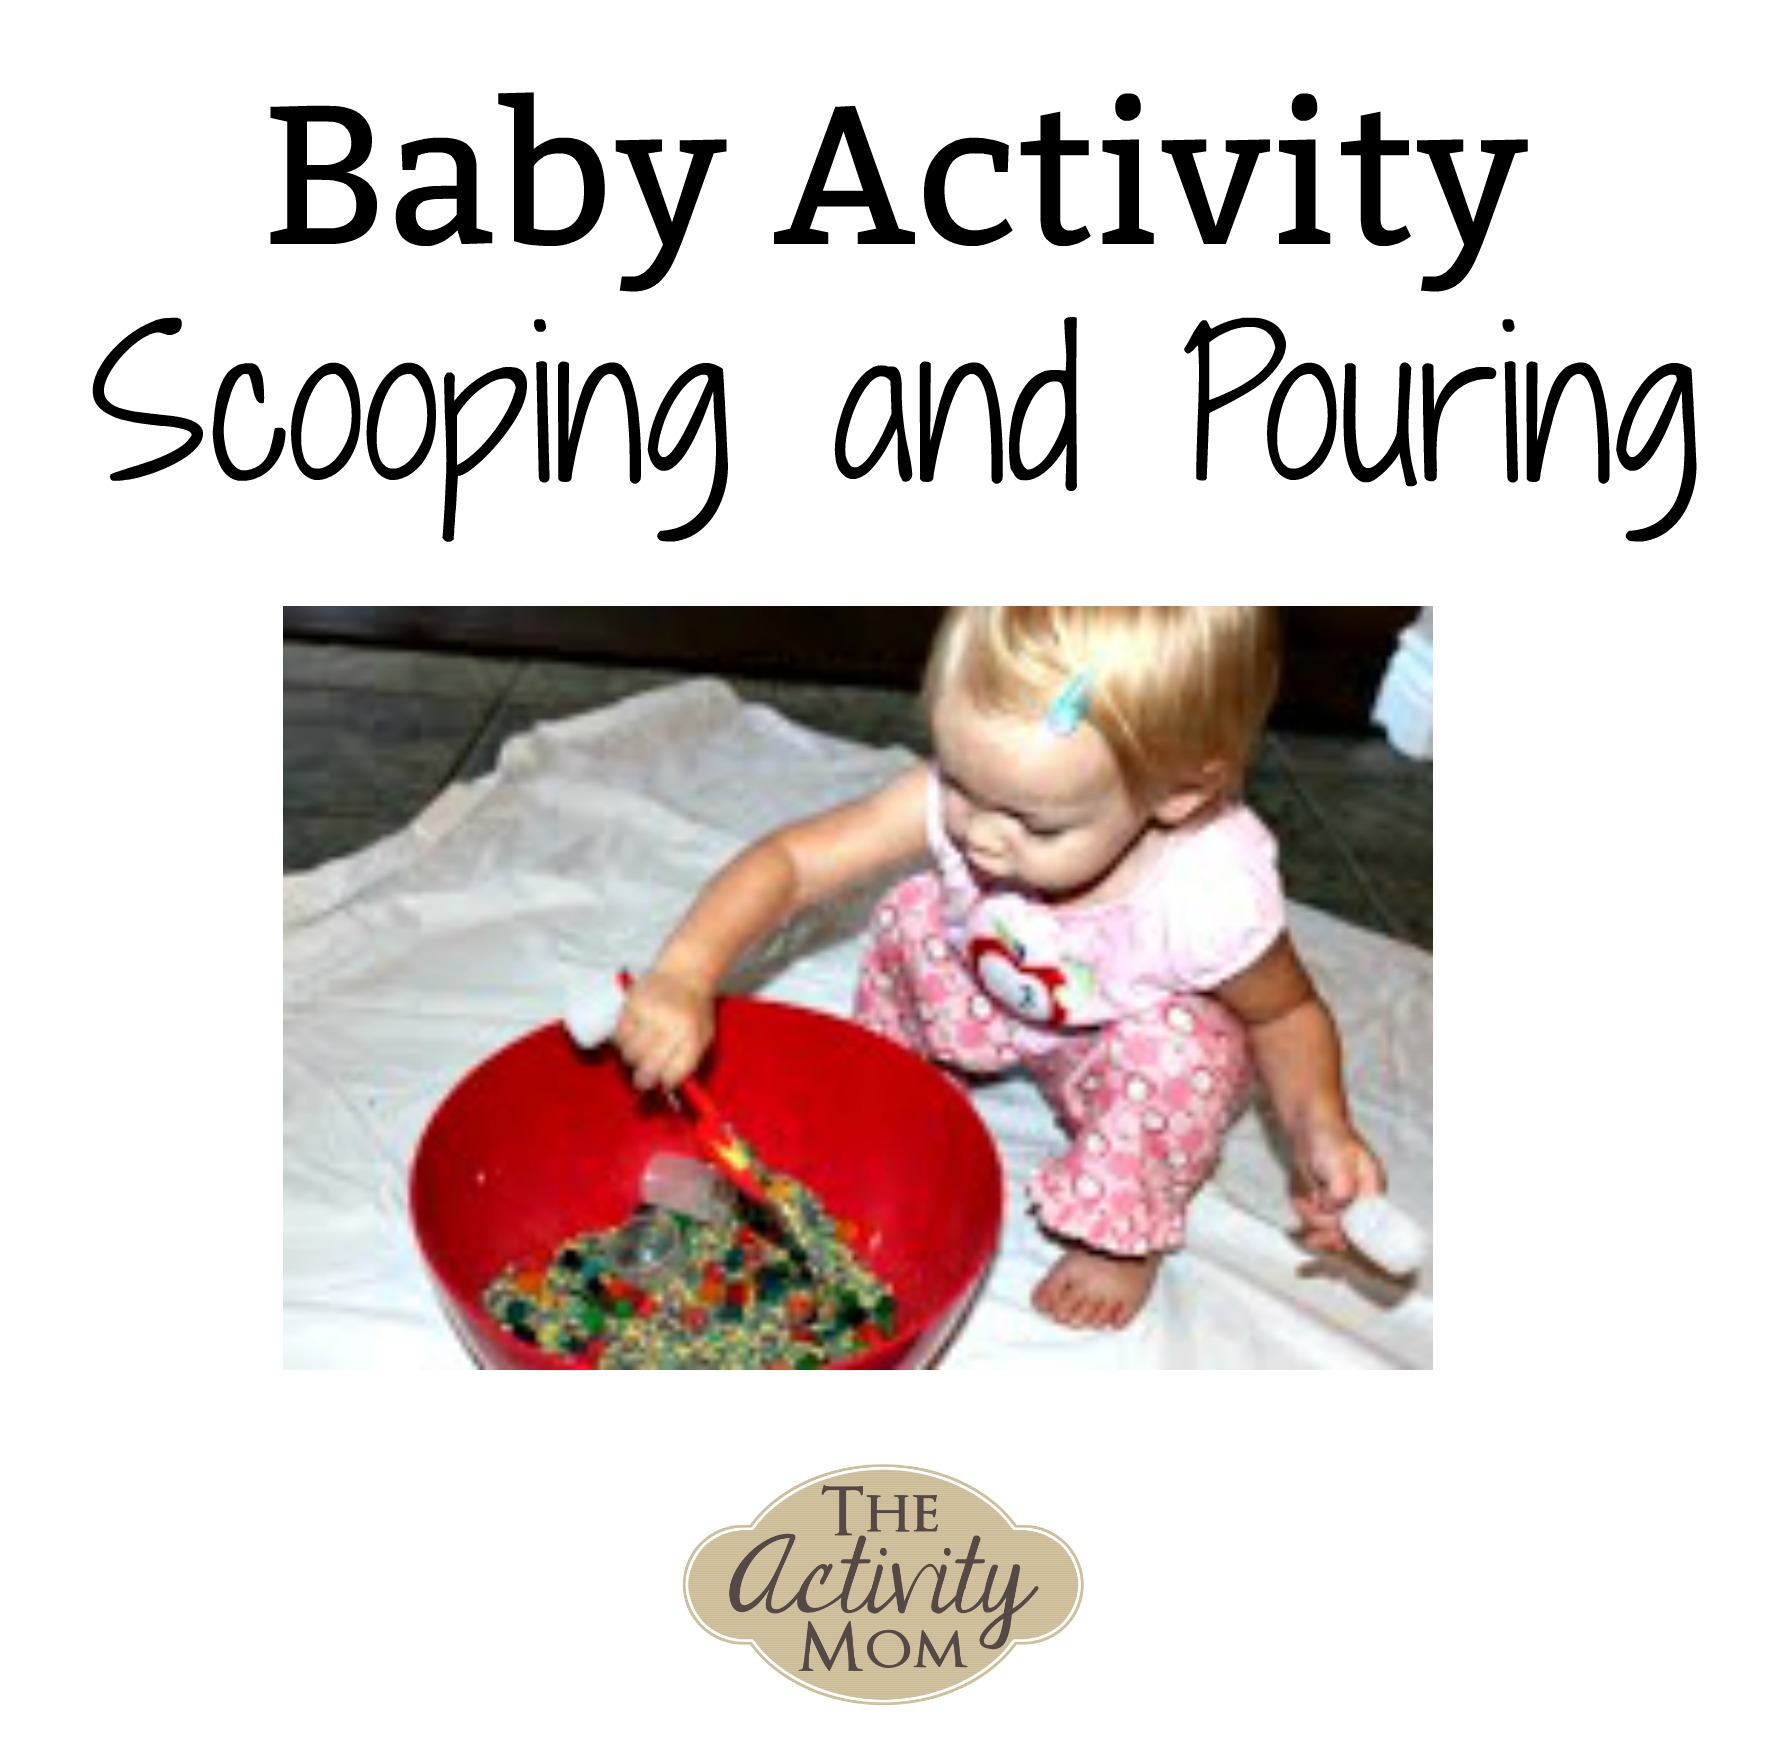 Baby Activity – Scooping and Pouring